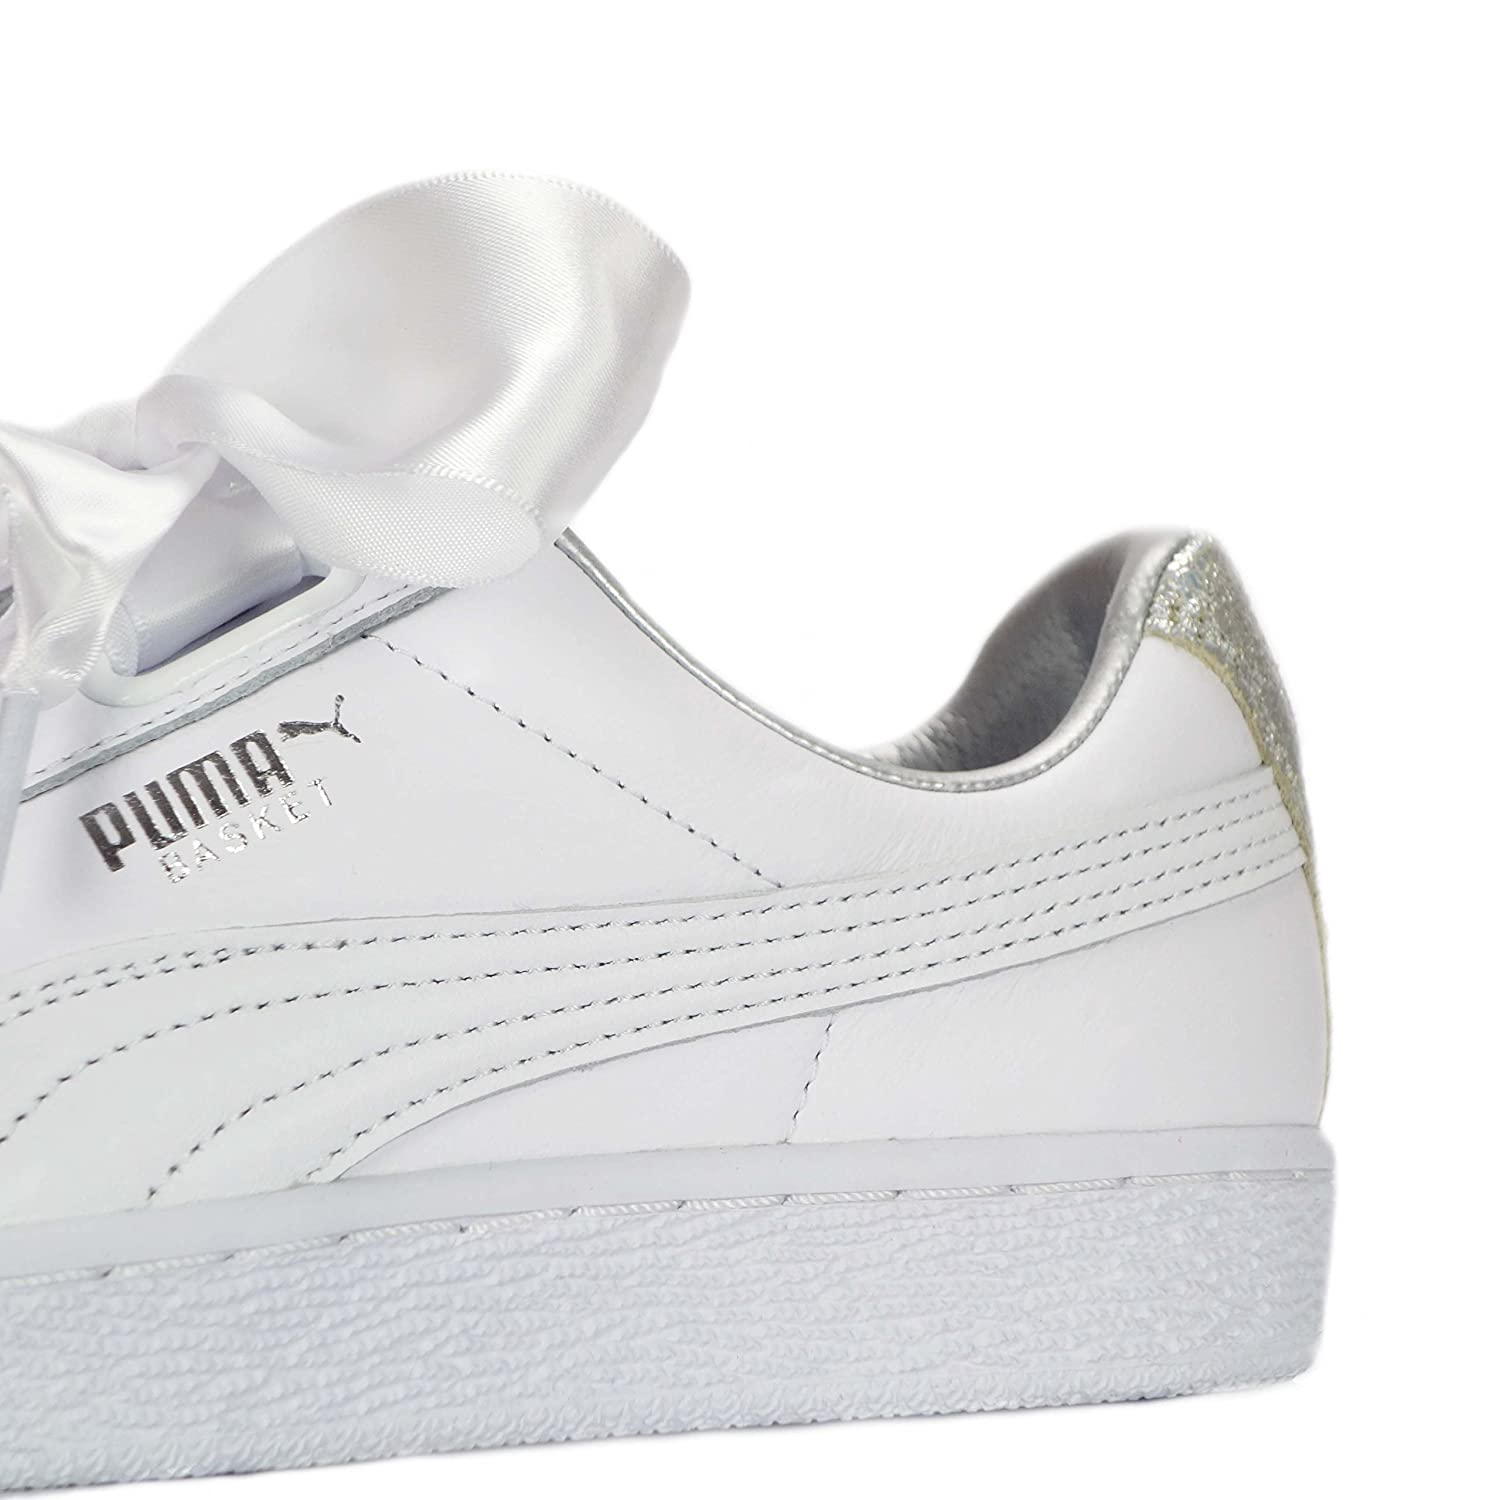 Puma Basket Heart Diamond Crush - Women Shoes (UK-5): Amazon.co.uk ...